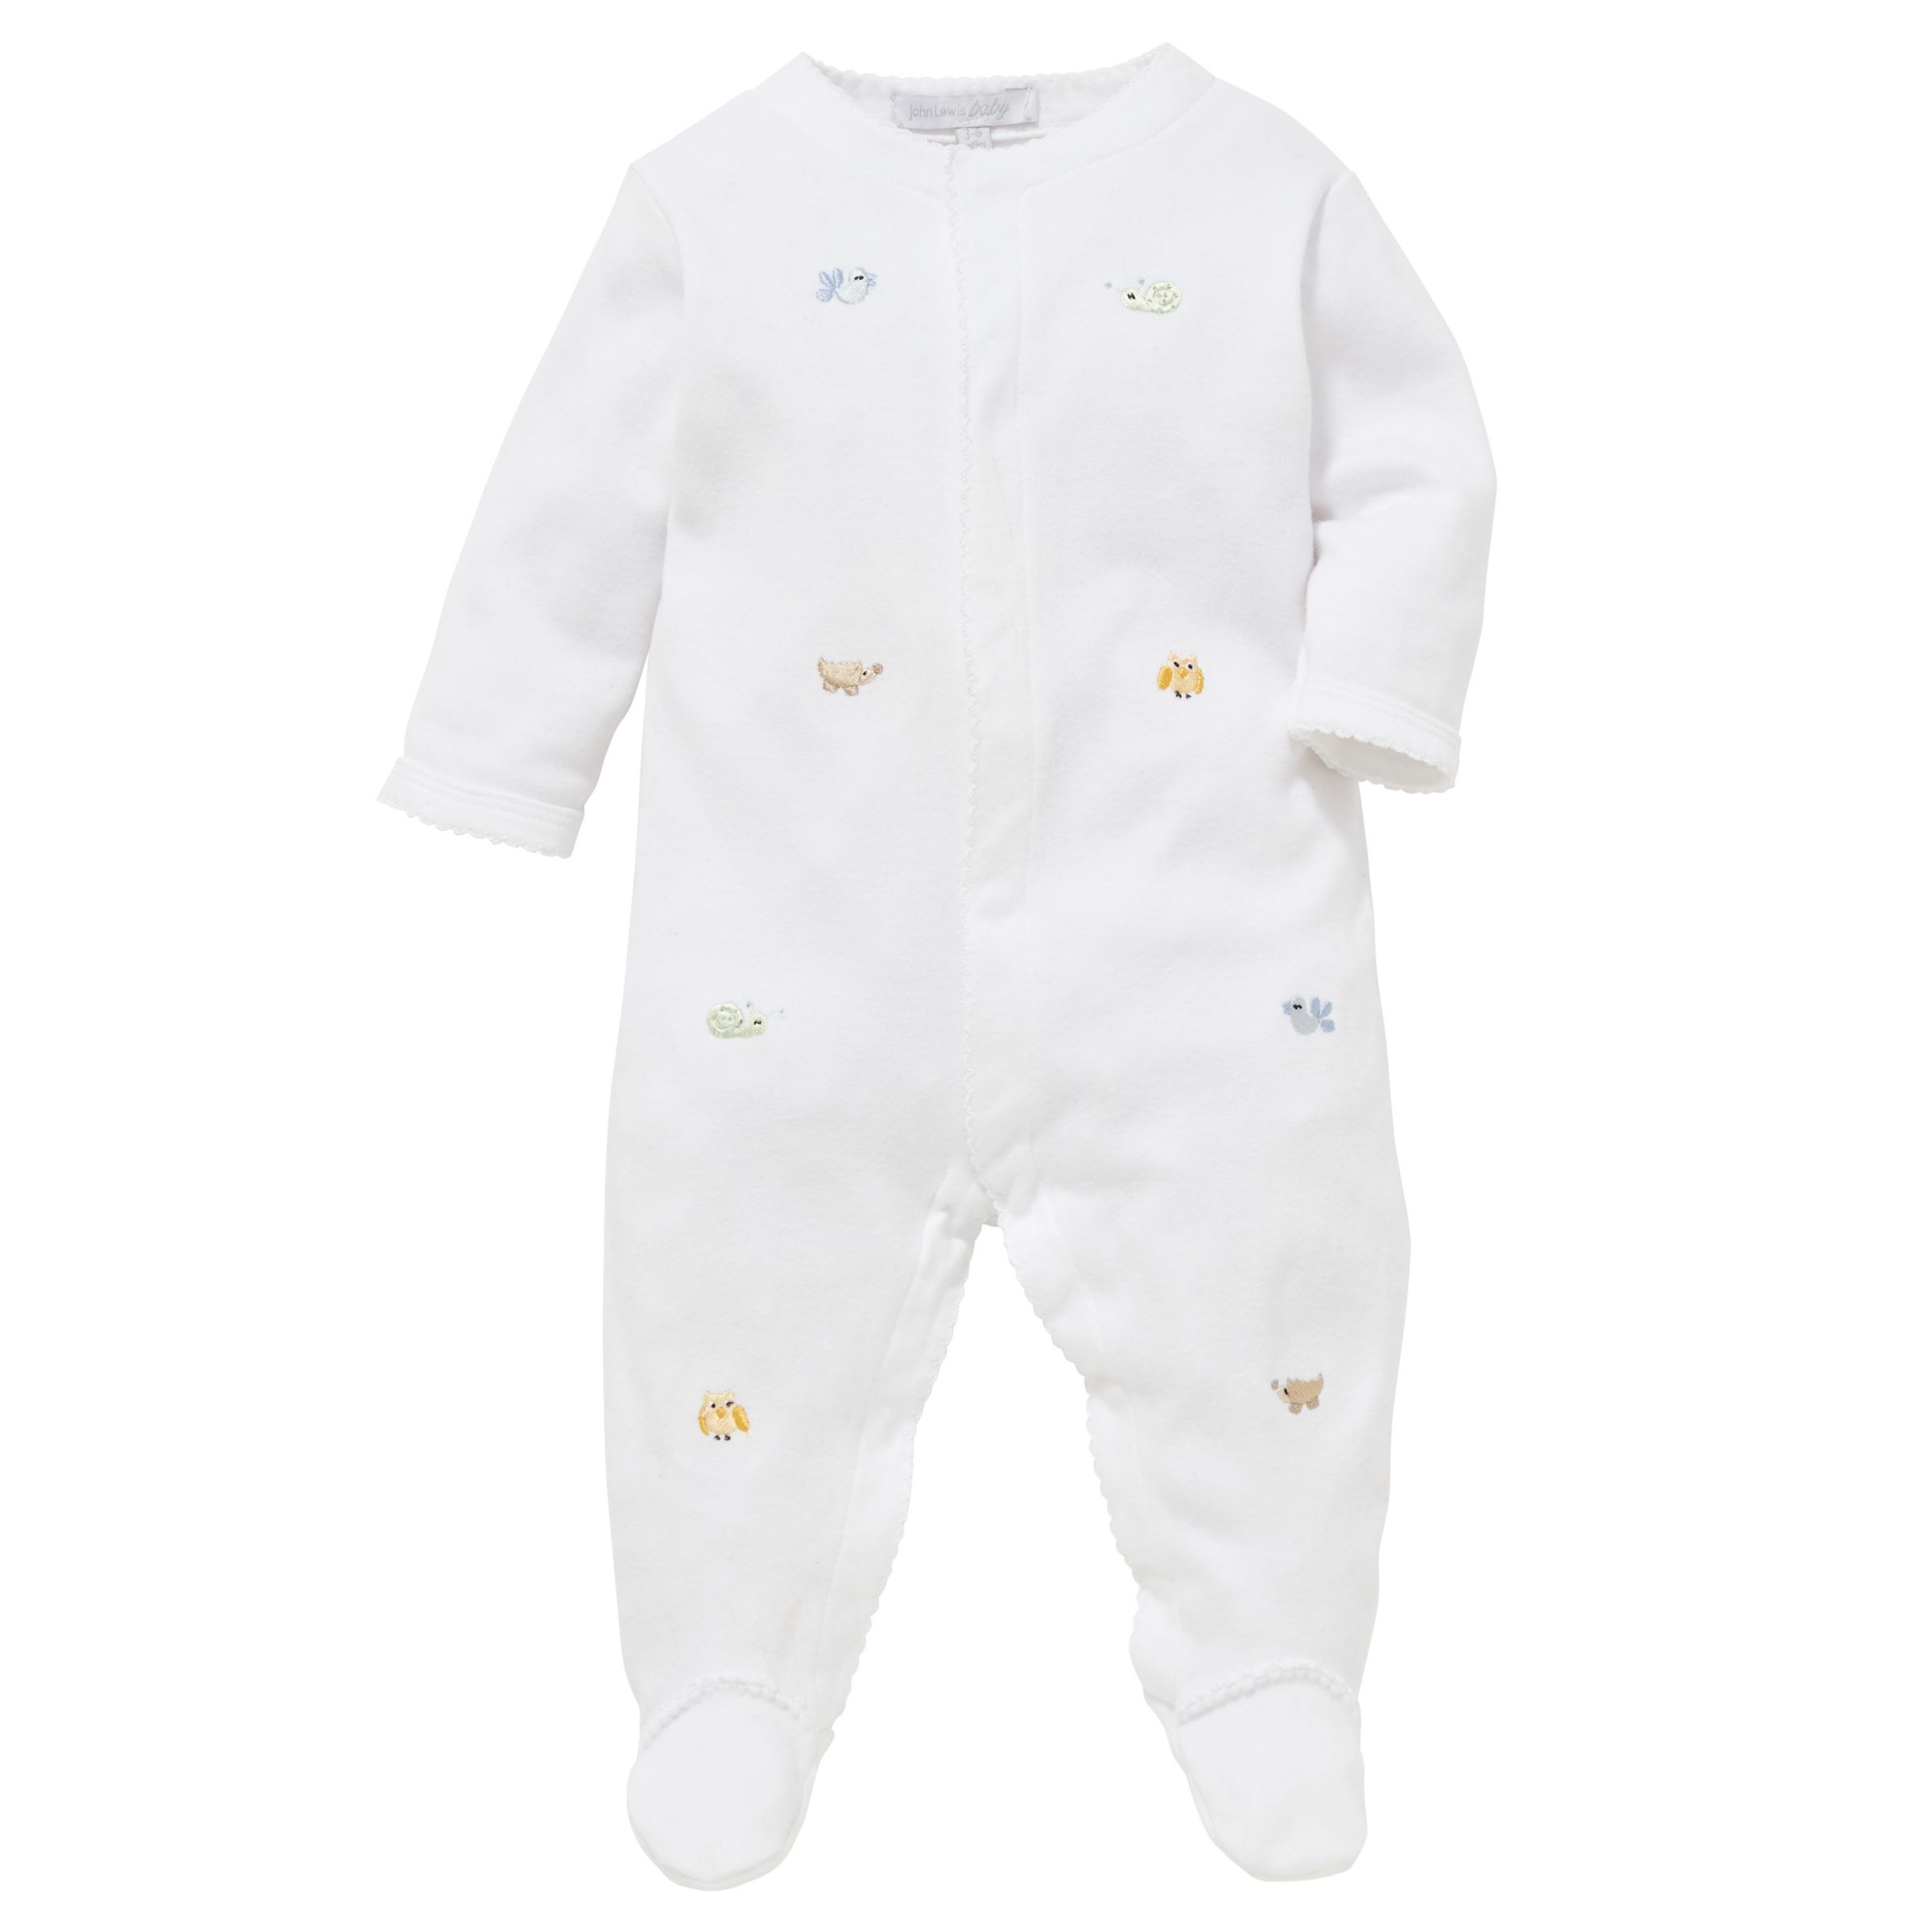 John Lewis Baby Embroidered Animal Sleepsuit 41334